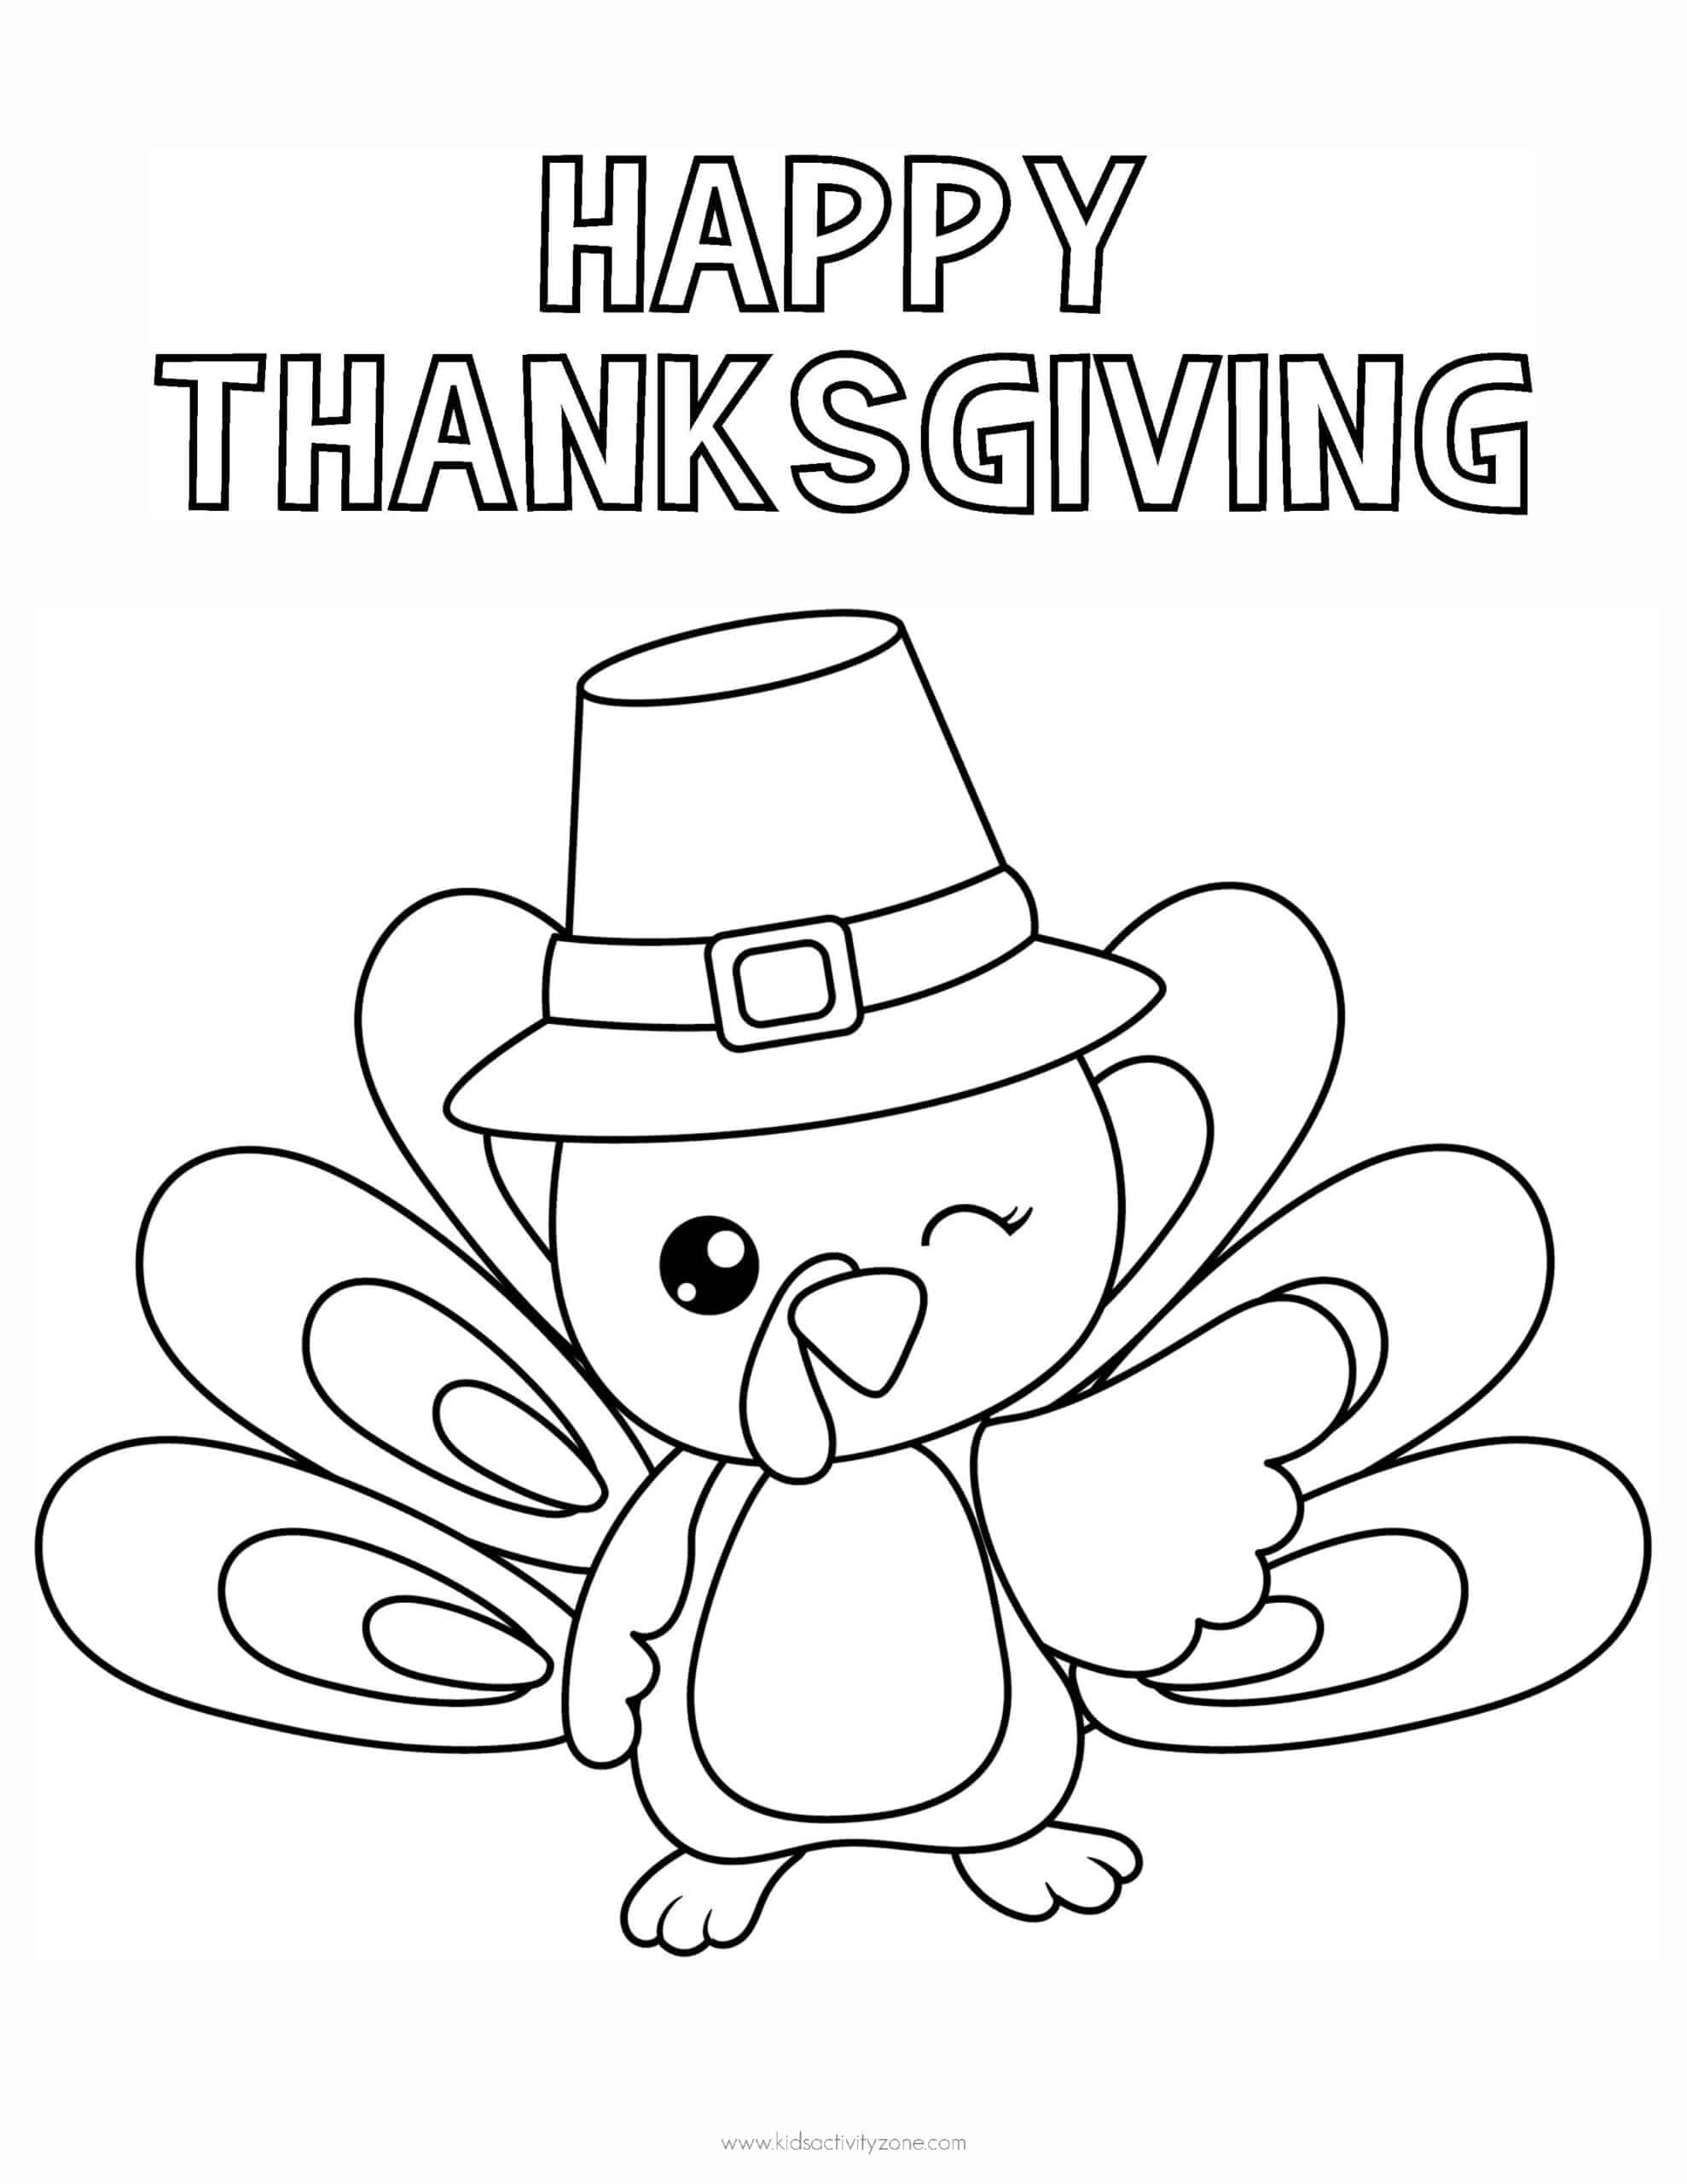 Happy Thanksgiving Turkey Coloring Page